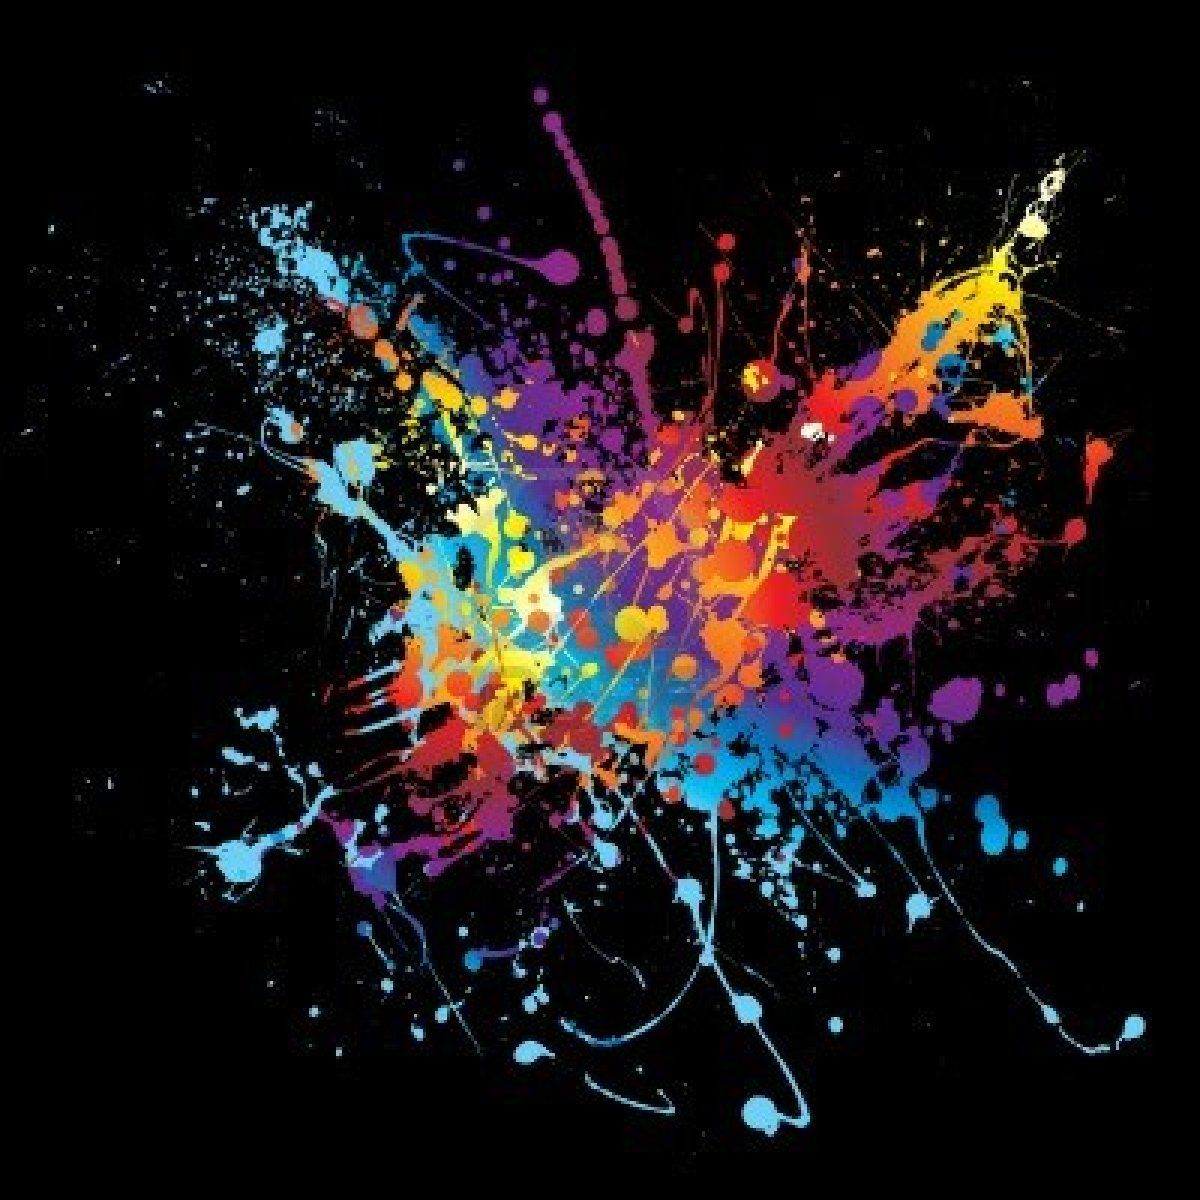 Colourful splat design with black background travel for Acrylic painting on black background